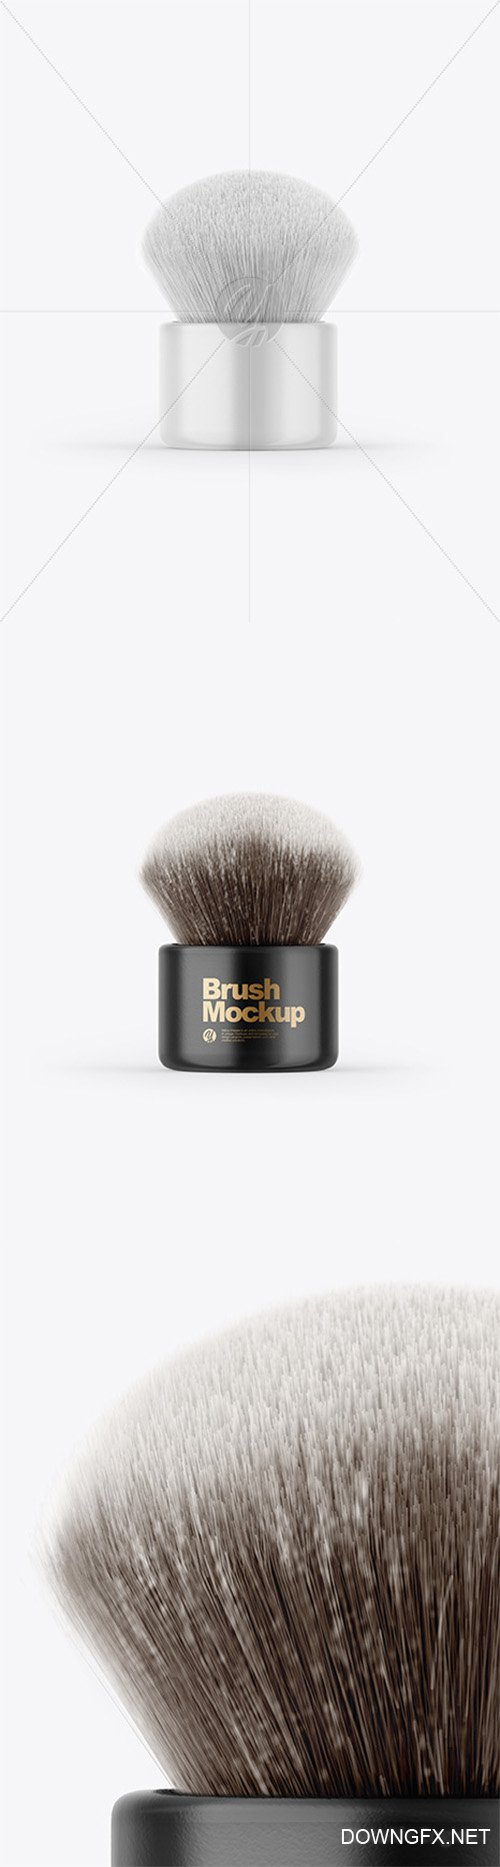 Glossy Powder Brush Mockup 64315